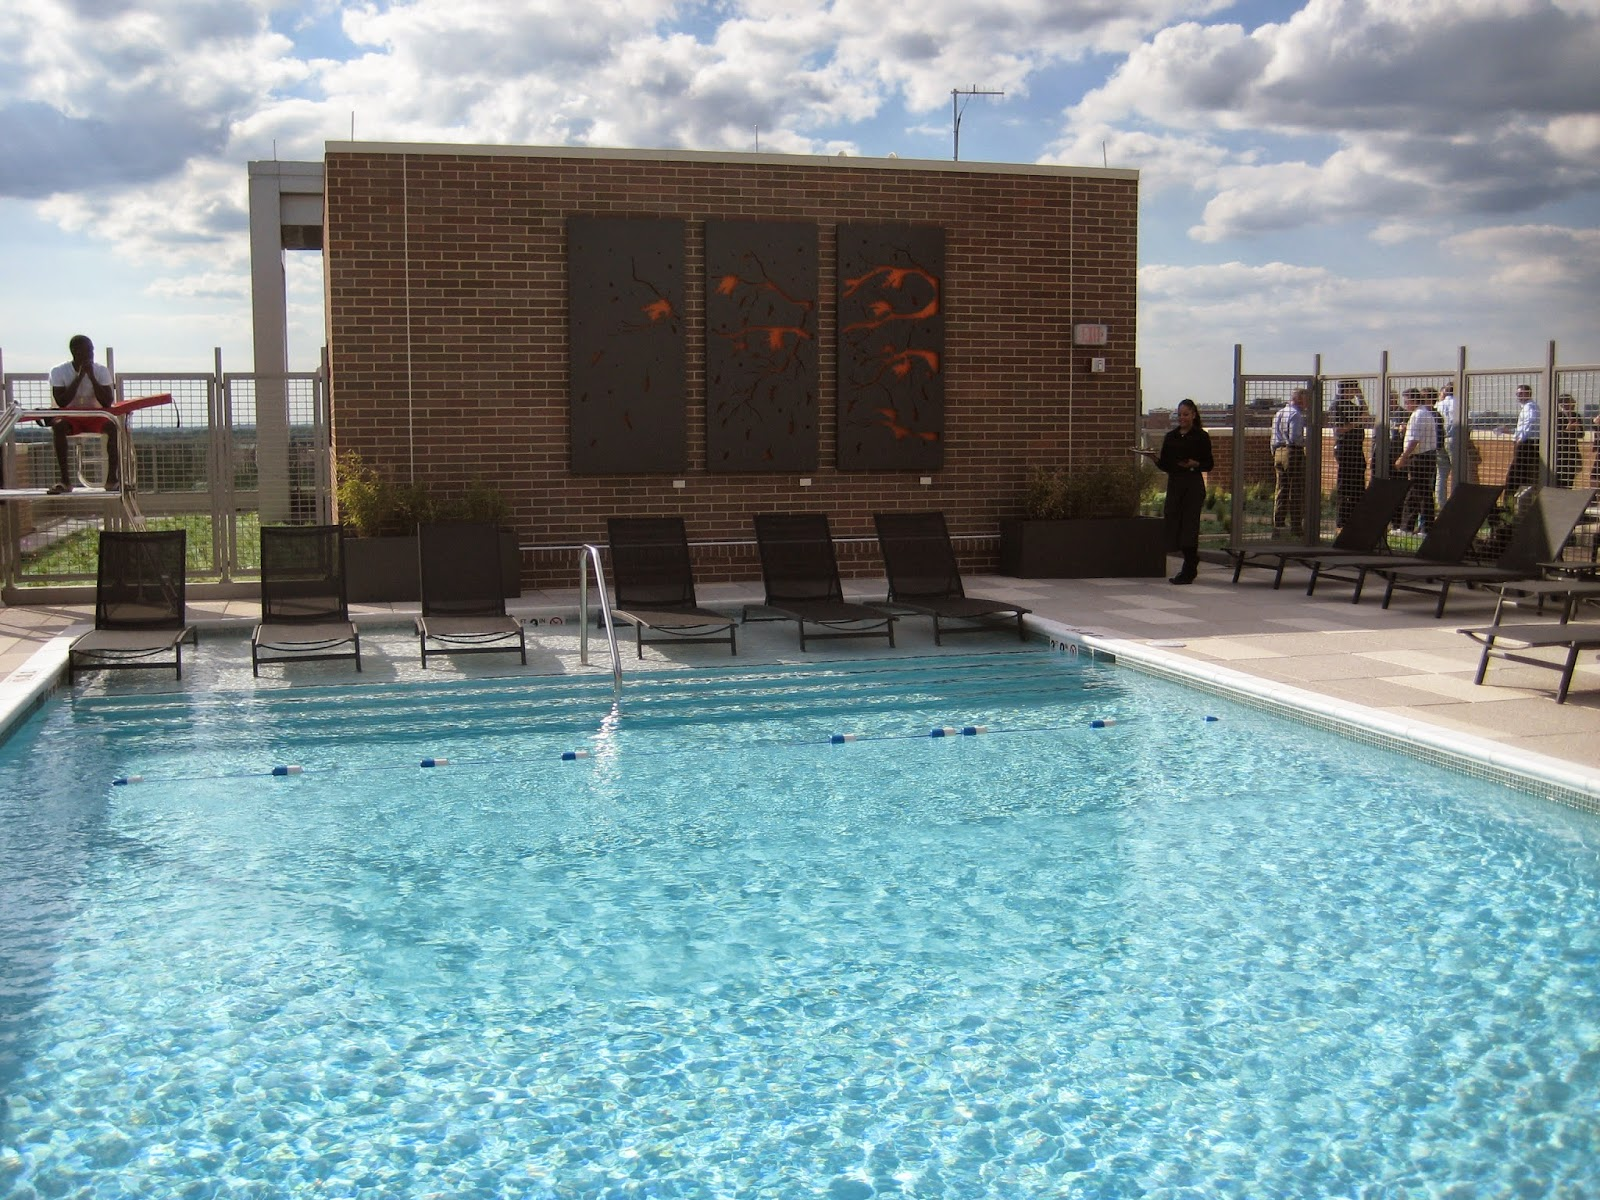 Rooftop Pool, Complete With Artworks And A Lifeguard On Duty